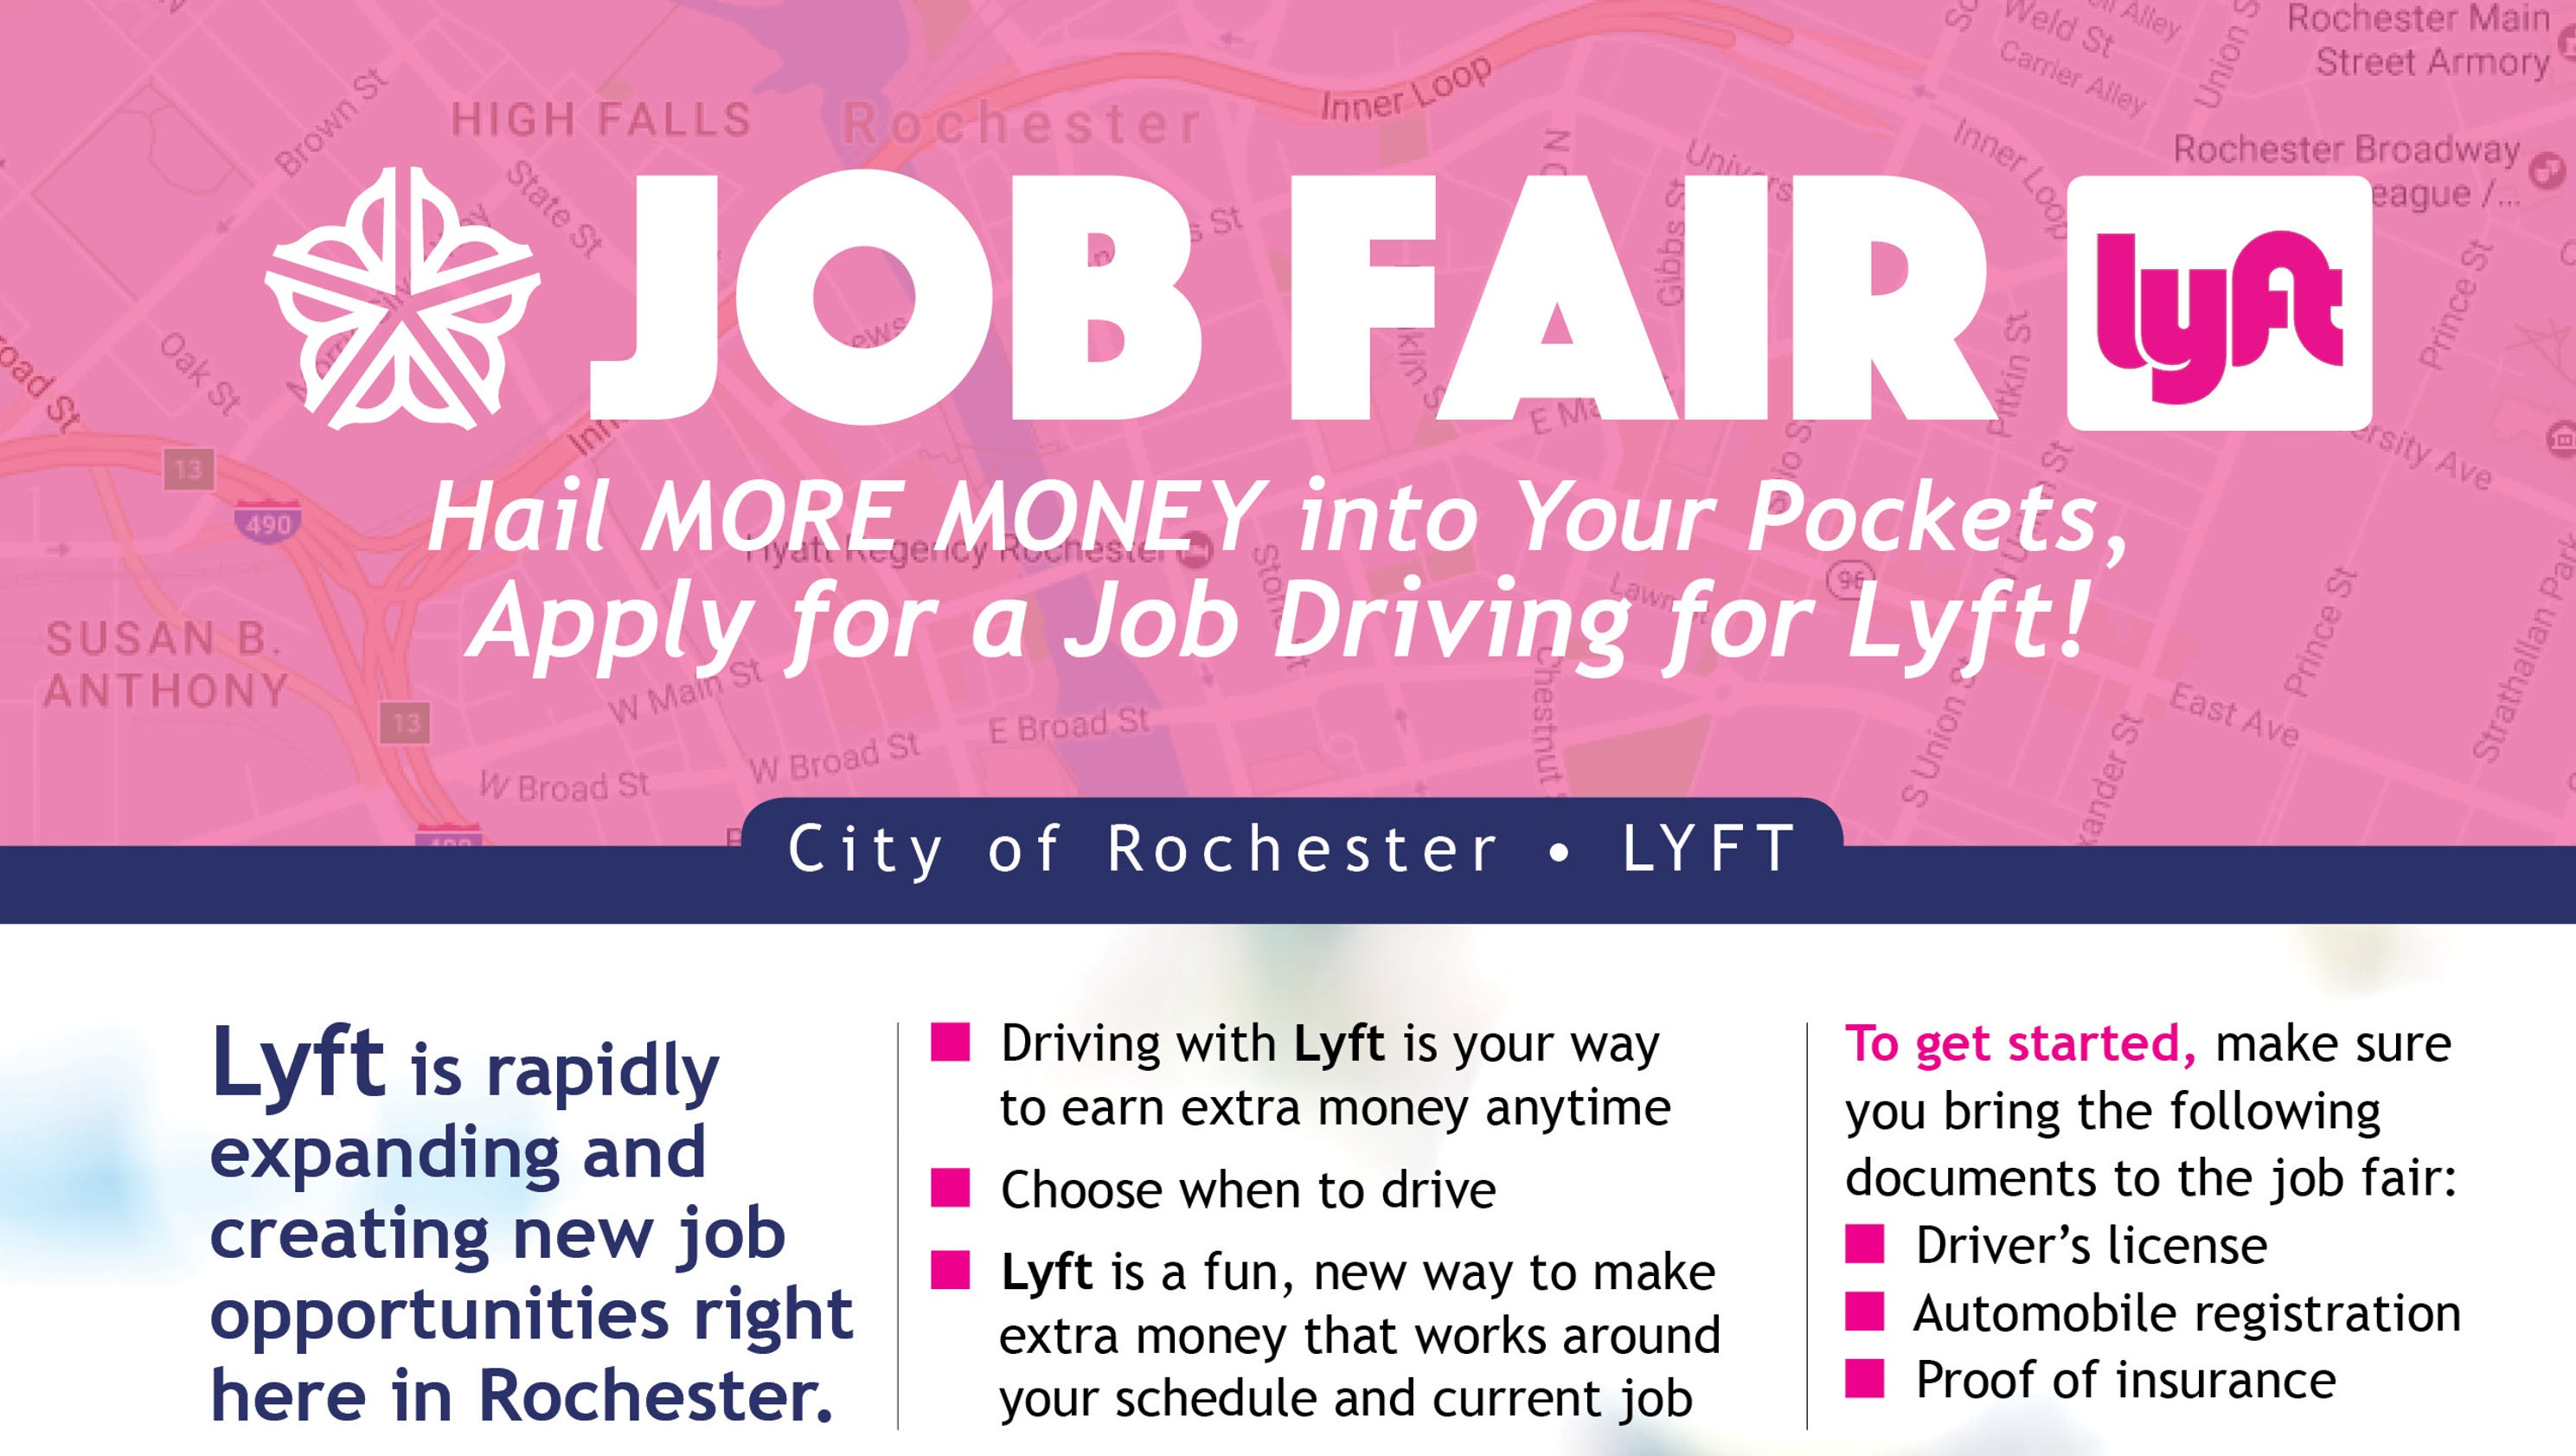 City hails Lyft in latest job fair — and why that might be a problem